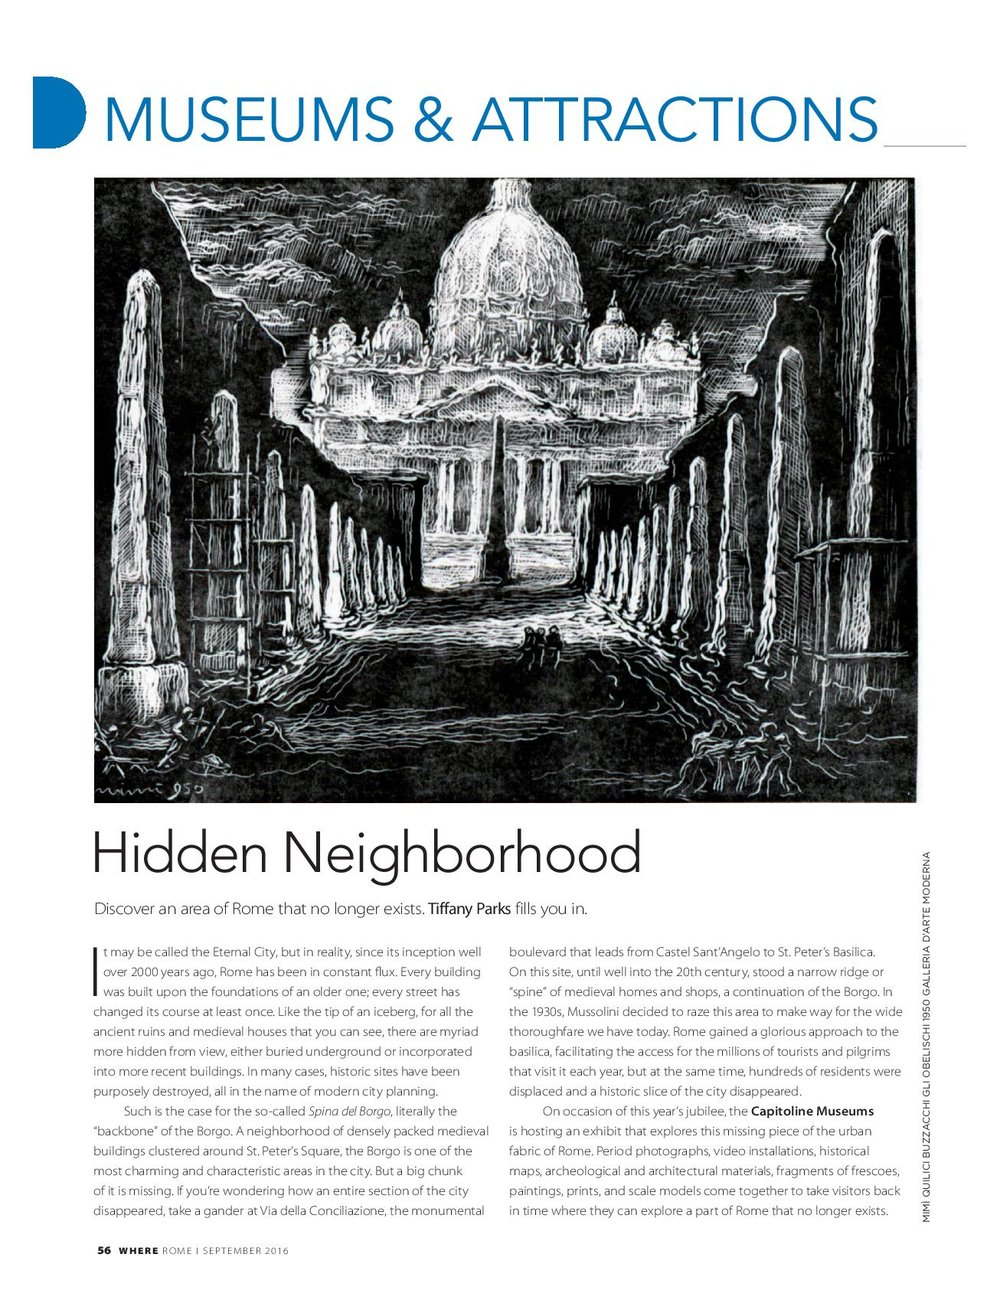 Hidden Neighborhood, September 2016-page-001.jpg